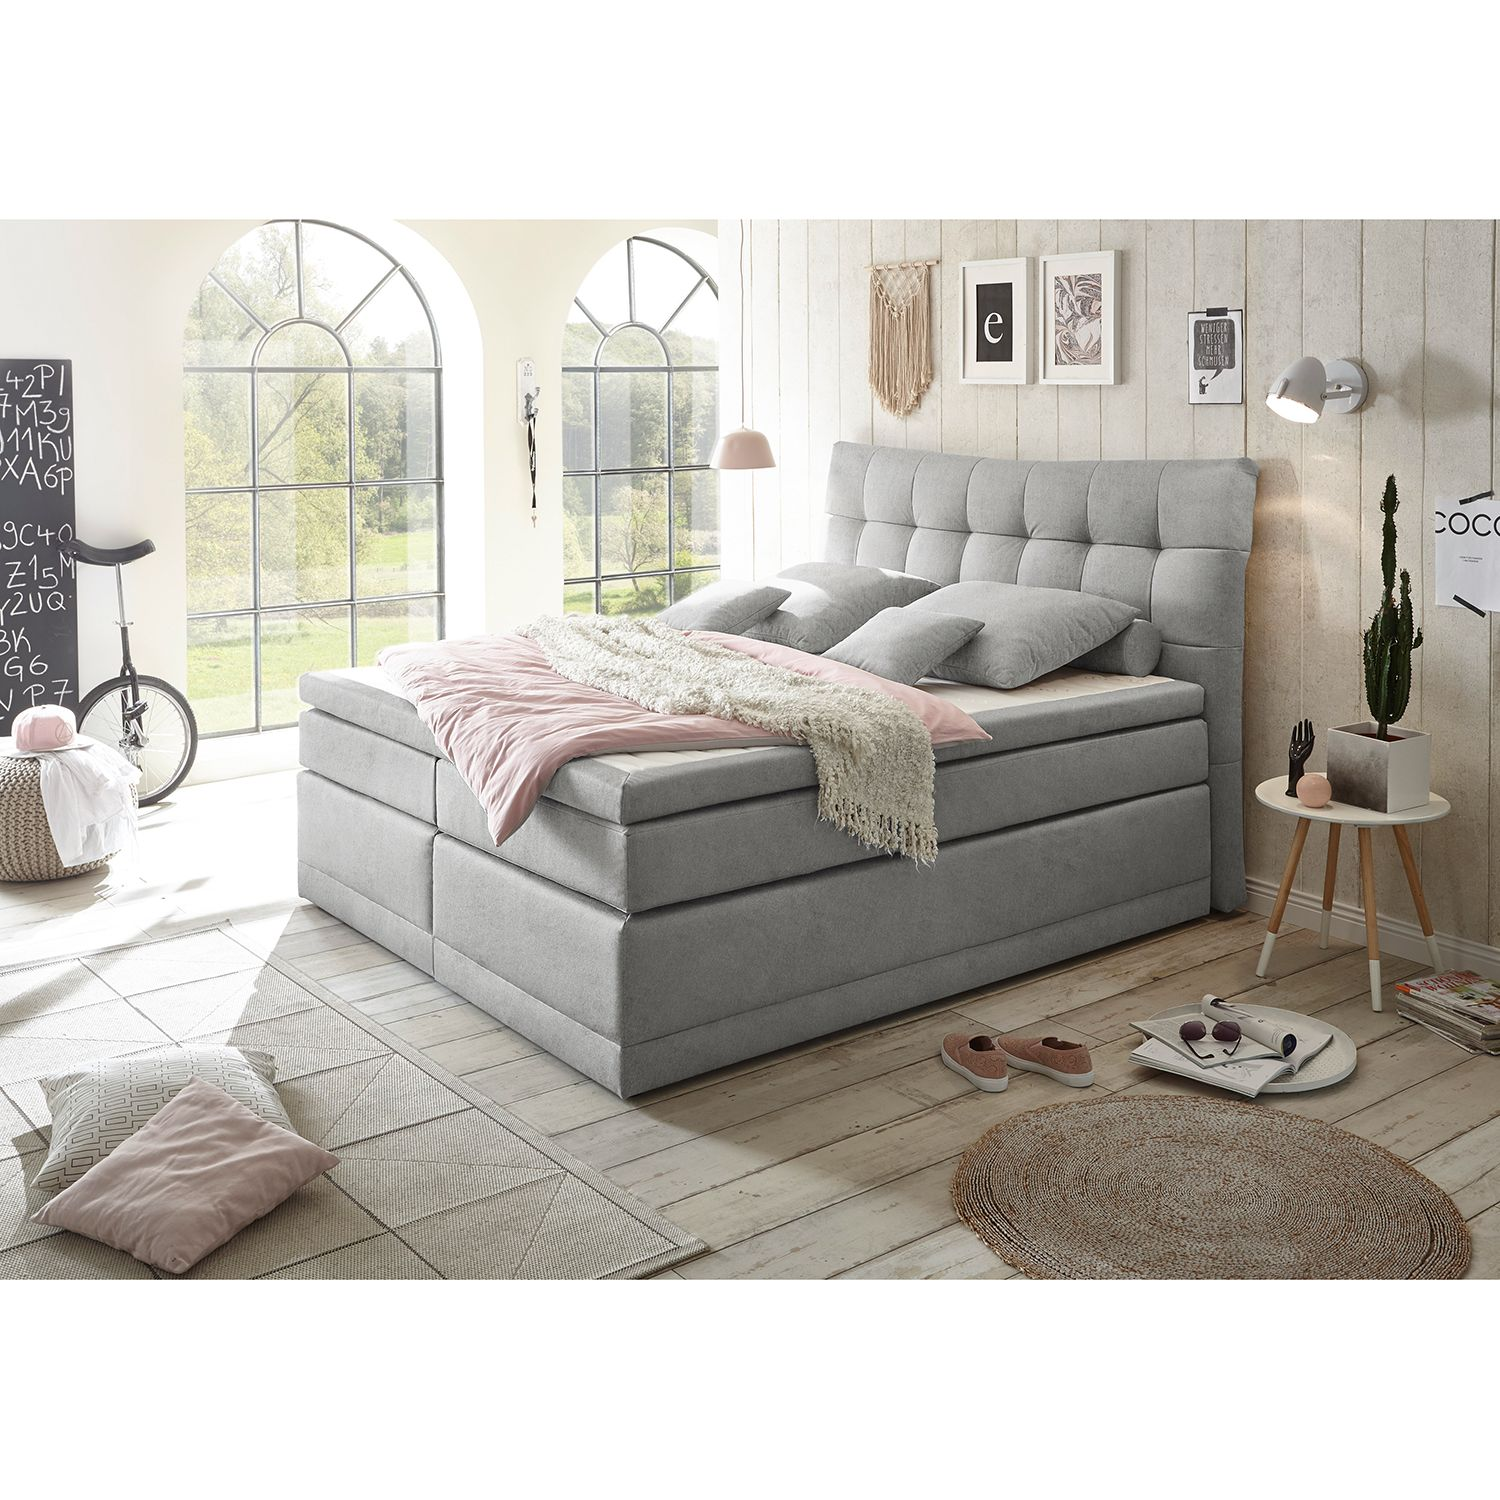 Lit boxspring Esrum